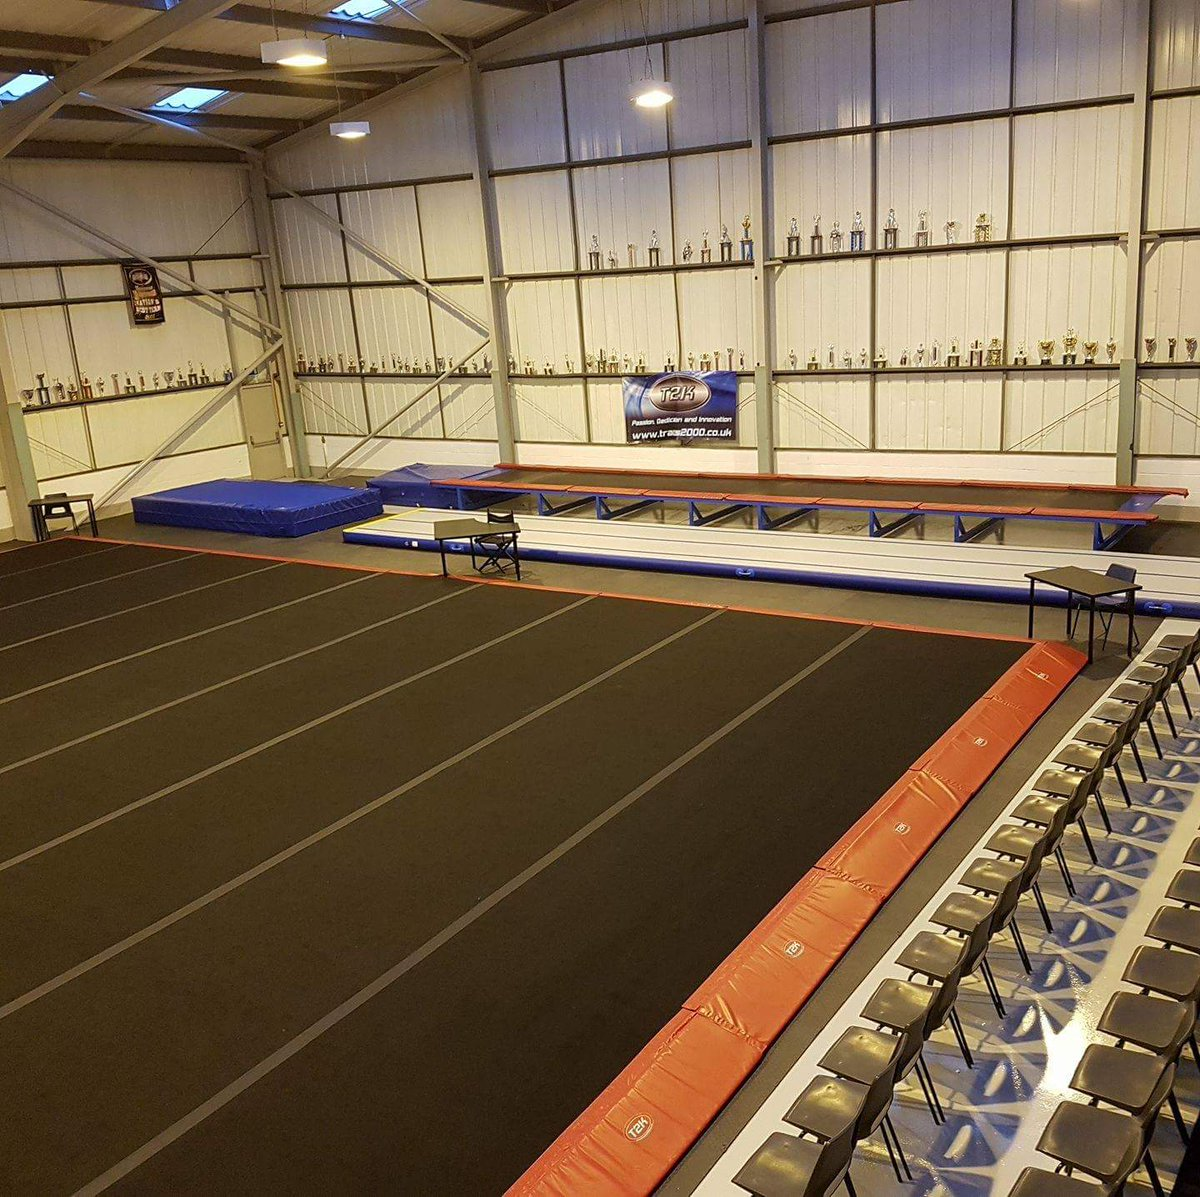 NCD Xtreme On Twitter Cheerleader Cheerleading Gymnastics Tumb Our Gym Is Avalible For Hire With A Full Size Sprung Floor Fast Track Air And